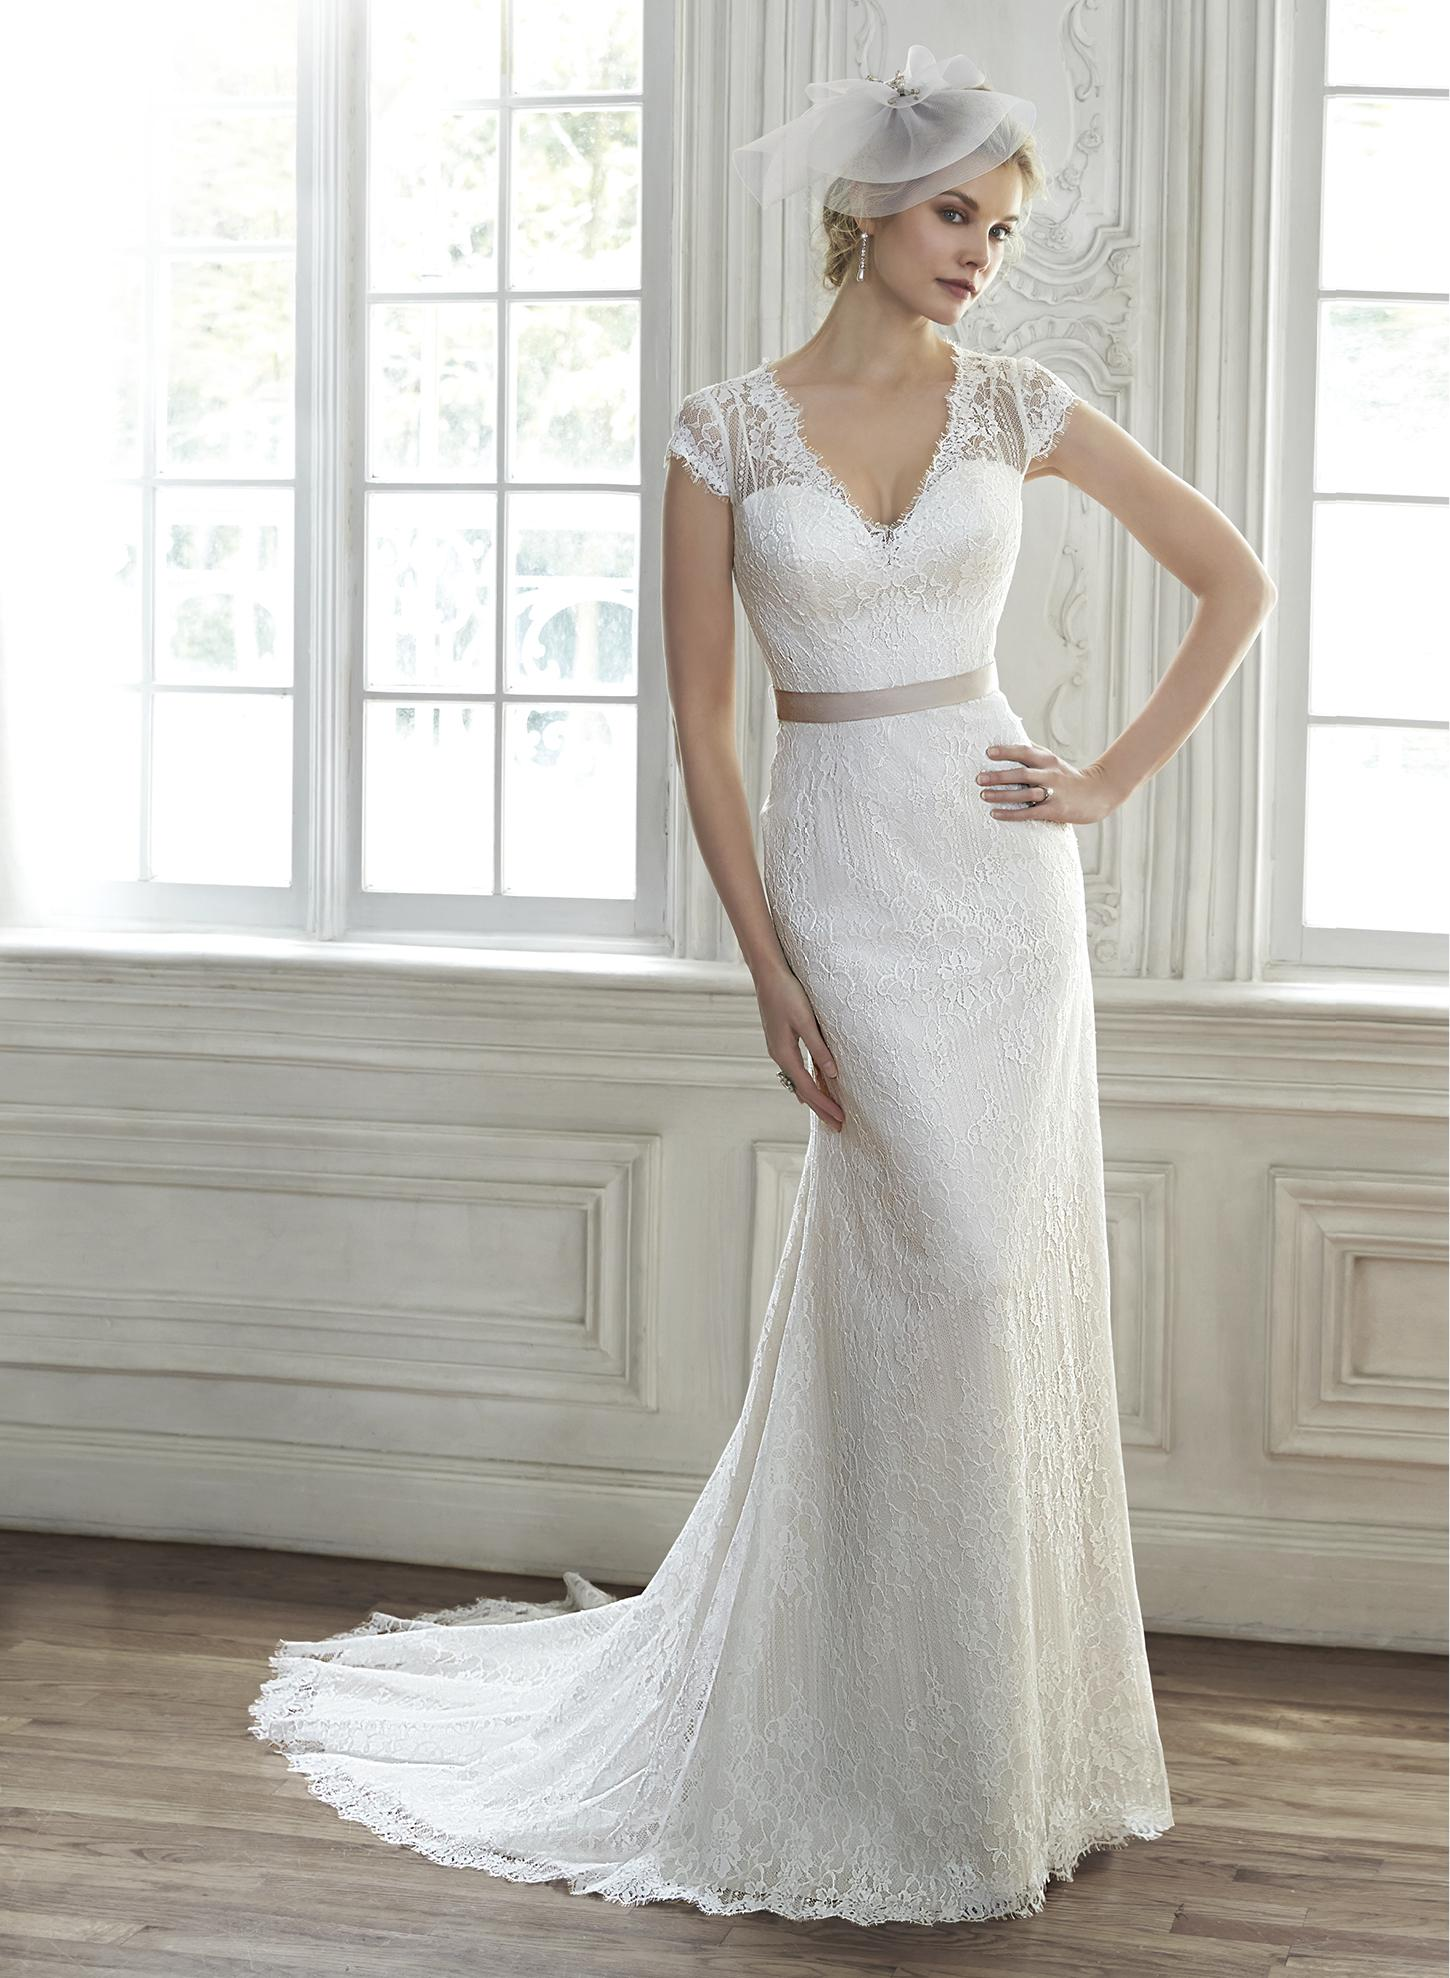 Sheath Wedding Gown Pattern : Neck cap sleeved sheath all over lace patterns wedding dress